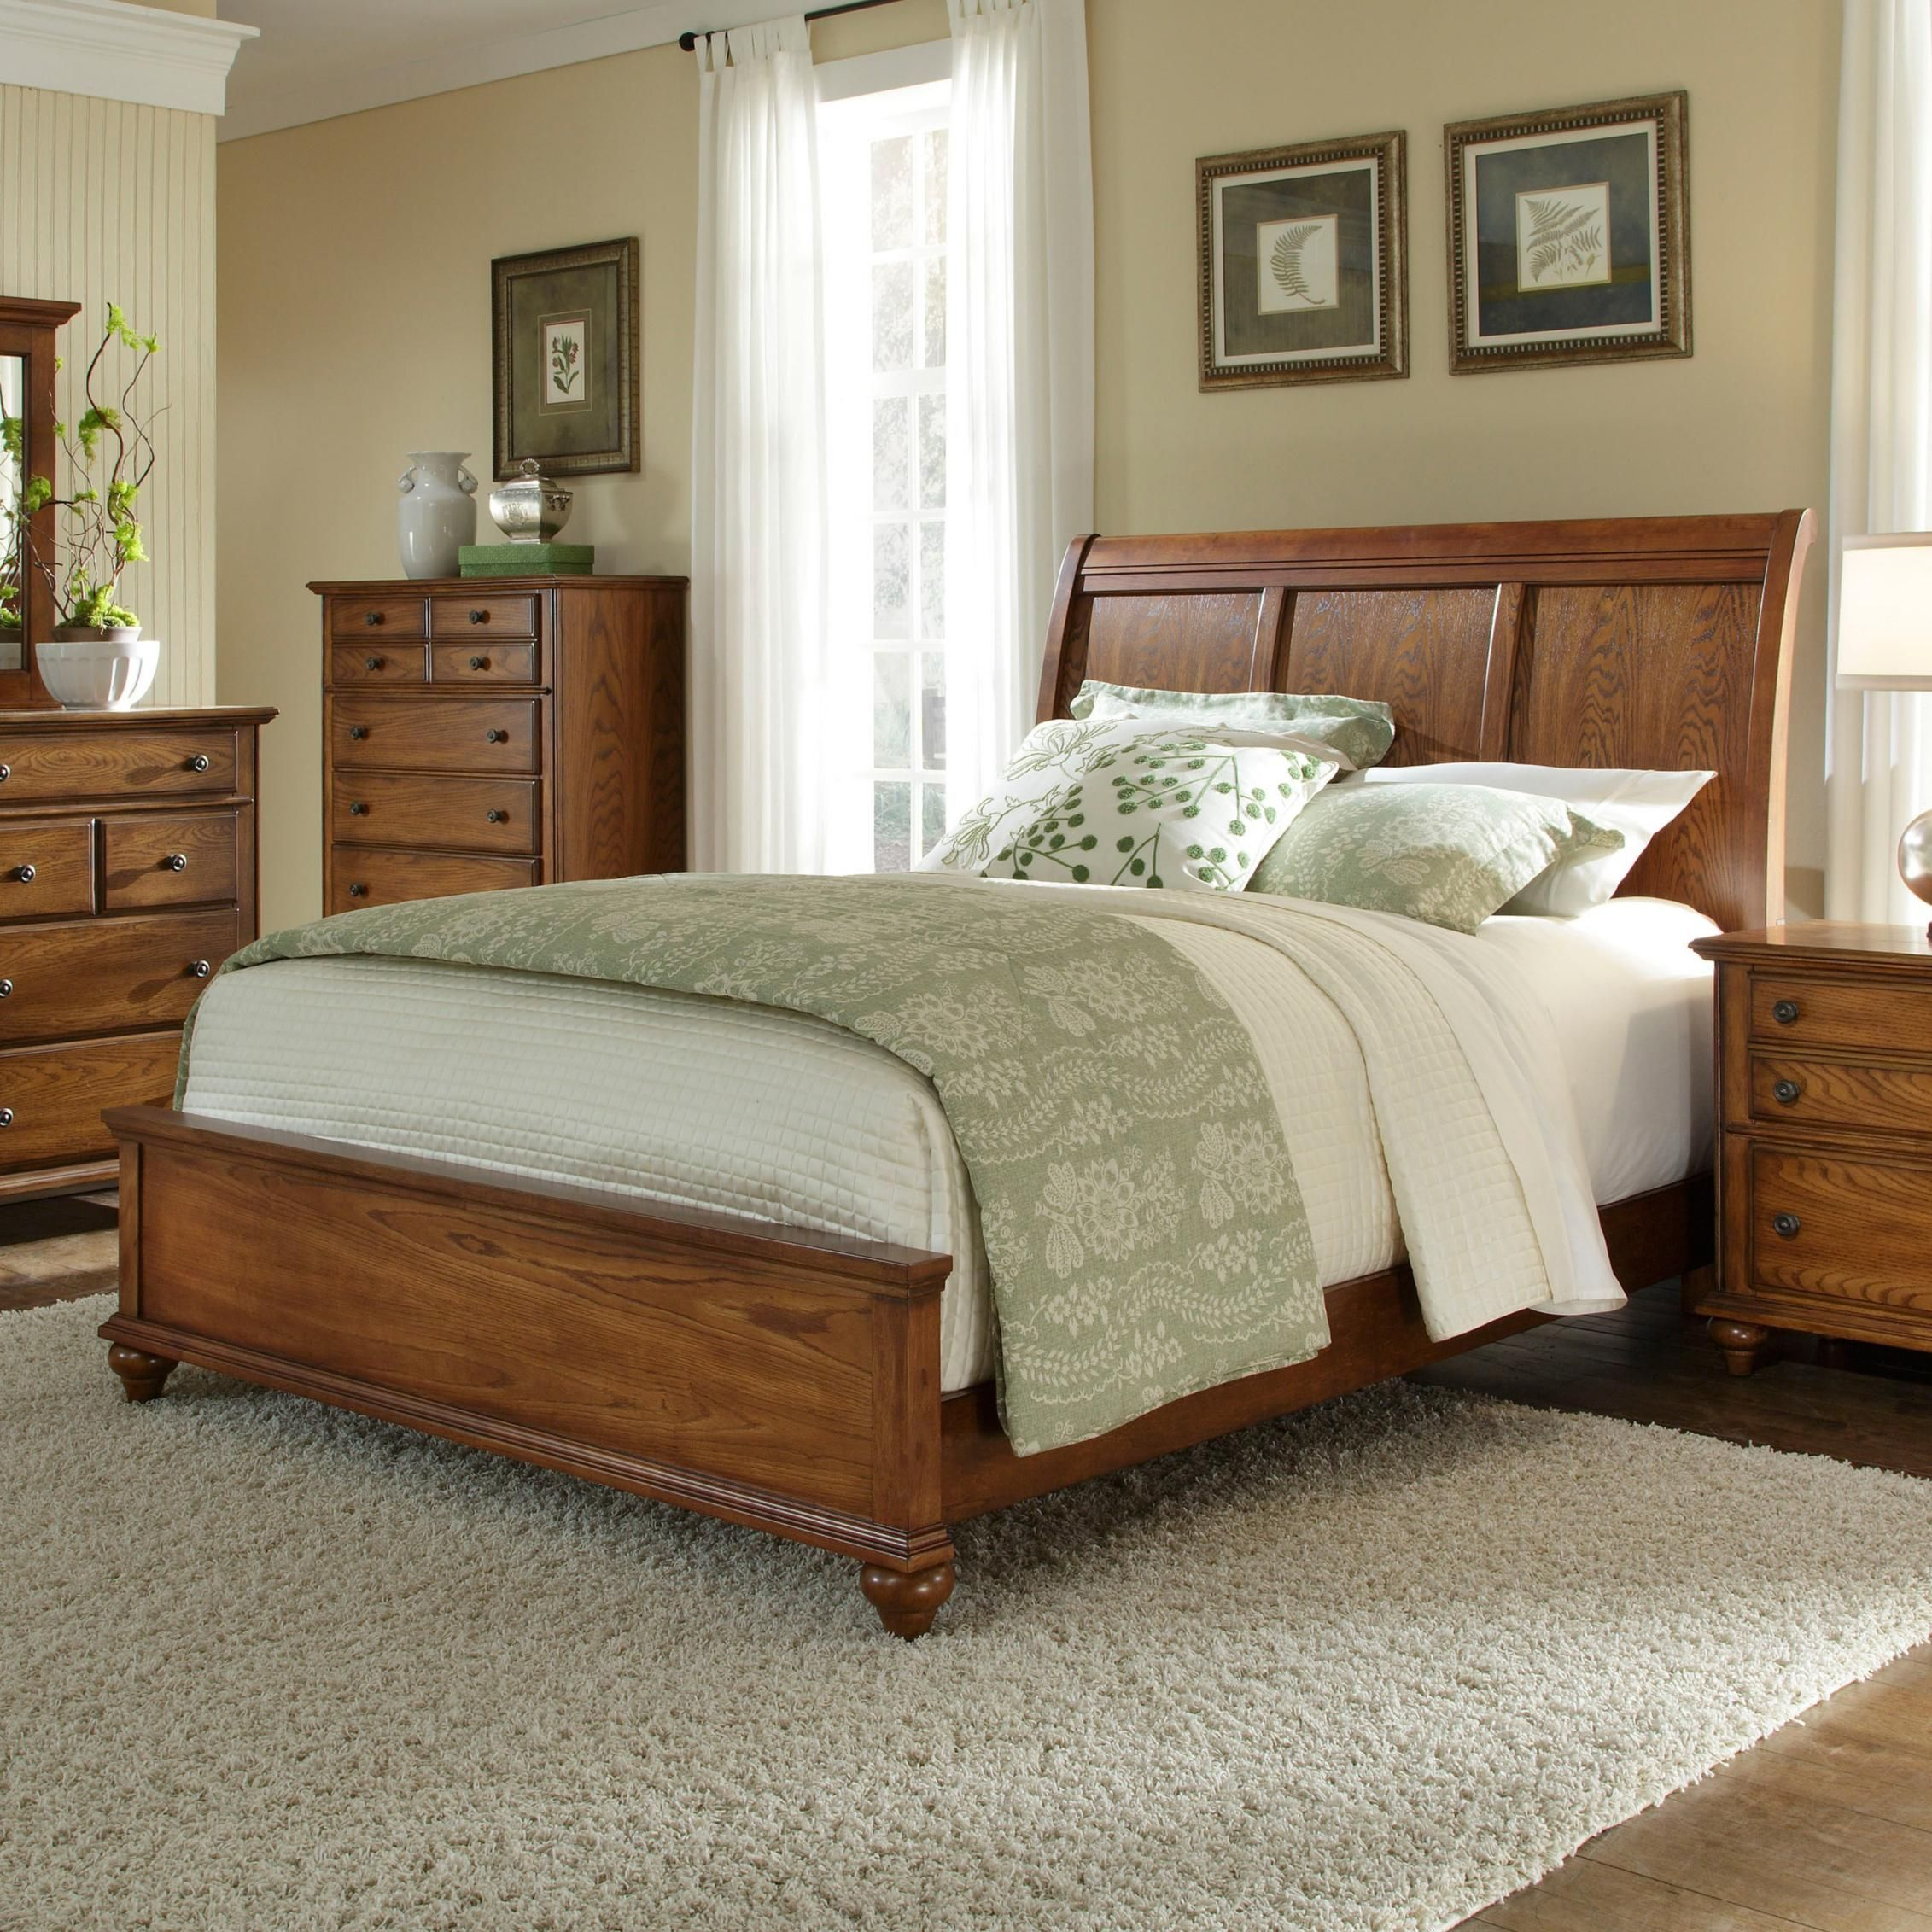 Hayden Place King Bed with Sleigh Headboard by Broyhill